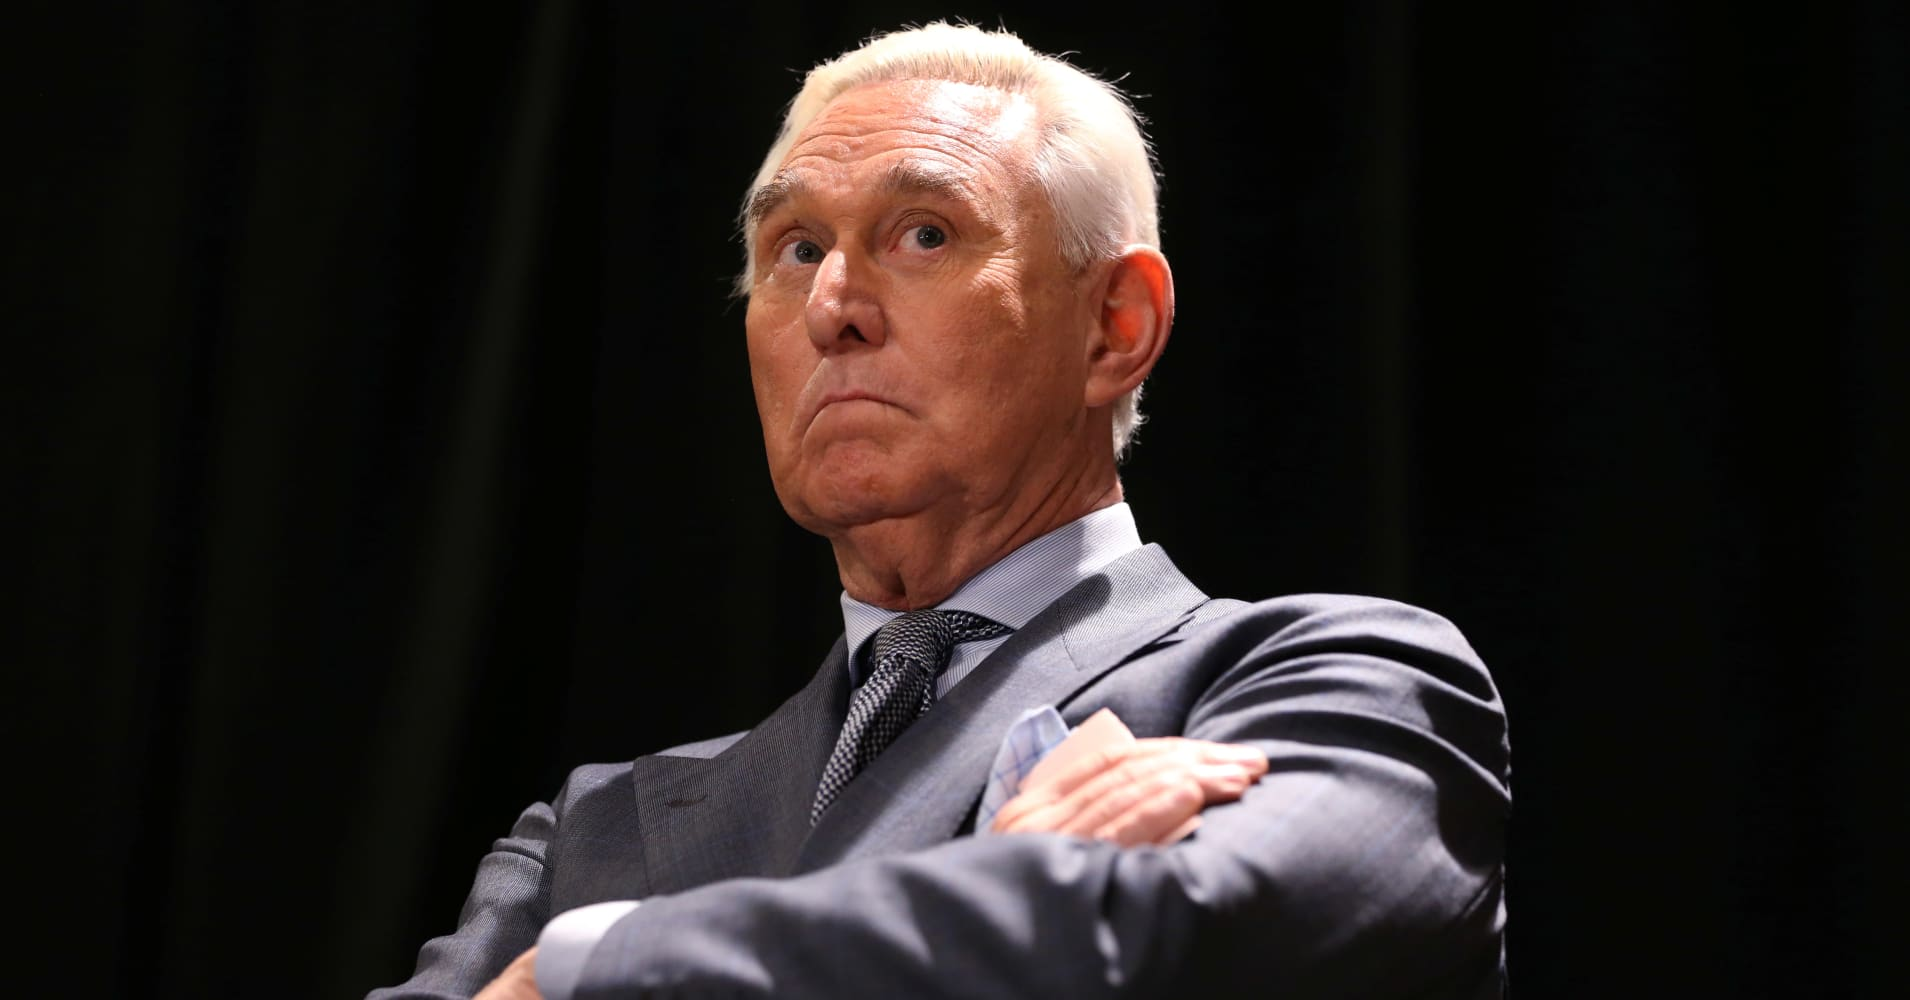 Roger Stone apologizes for Instagram post showing crosshairs near judge